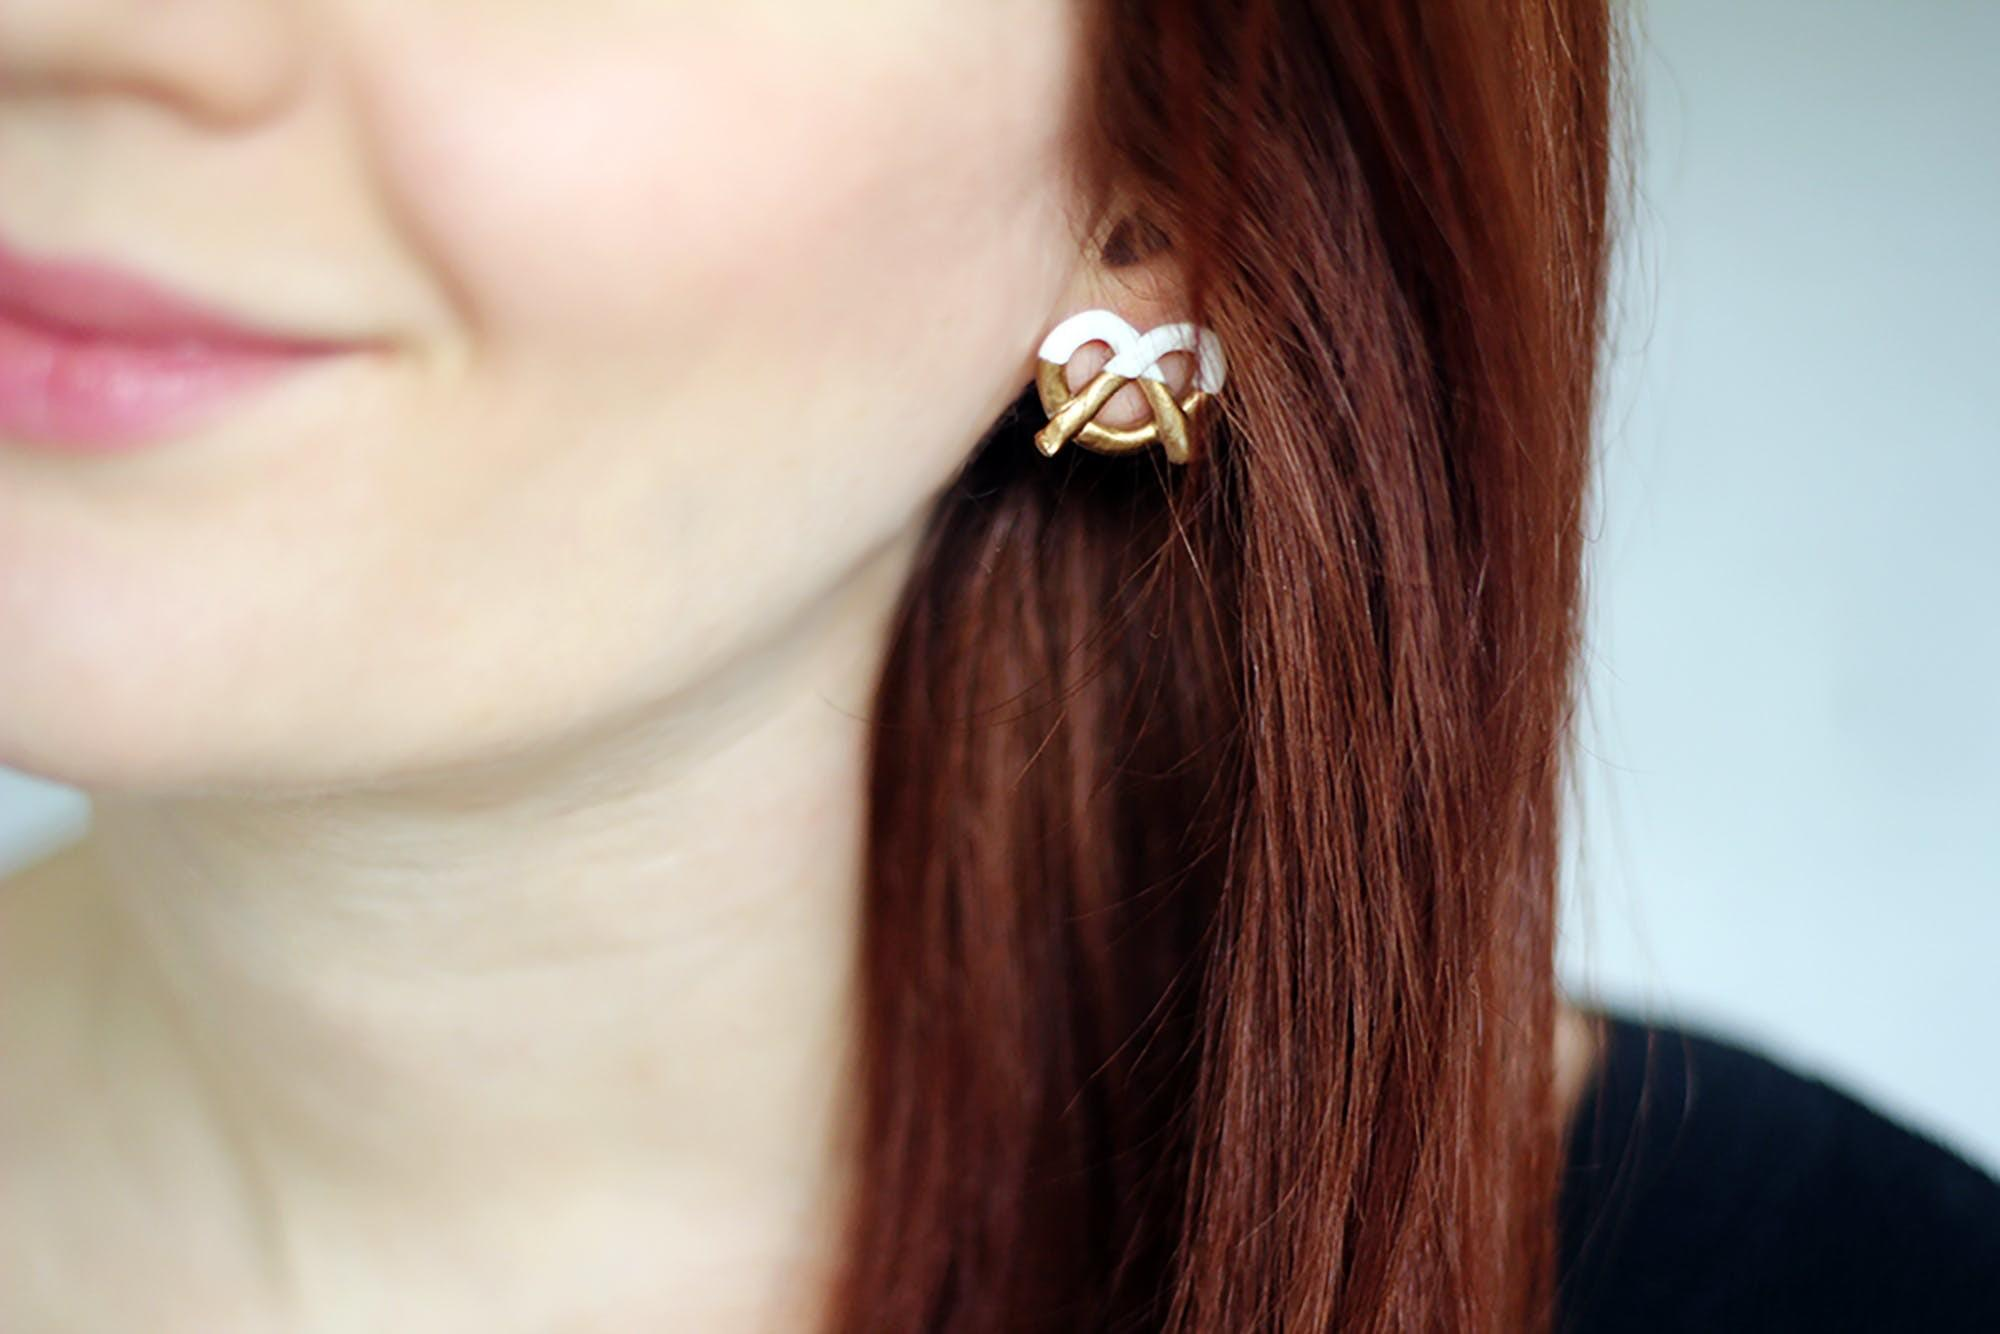 Diy These Marc Jacobs Inspired Pretzel Earrings